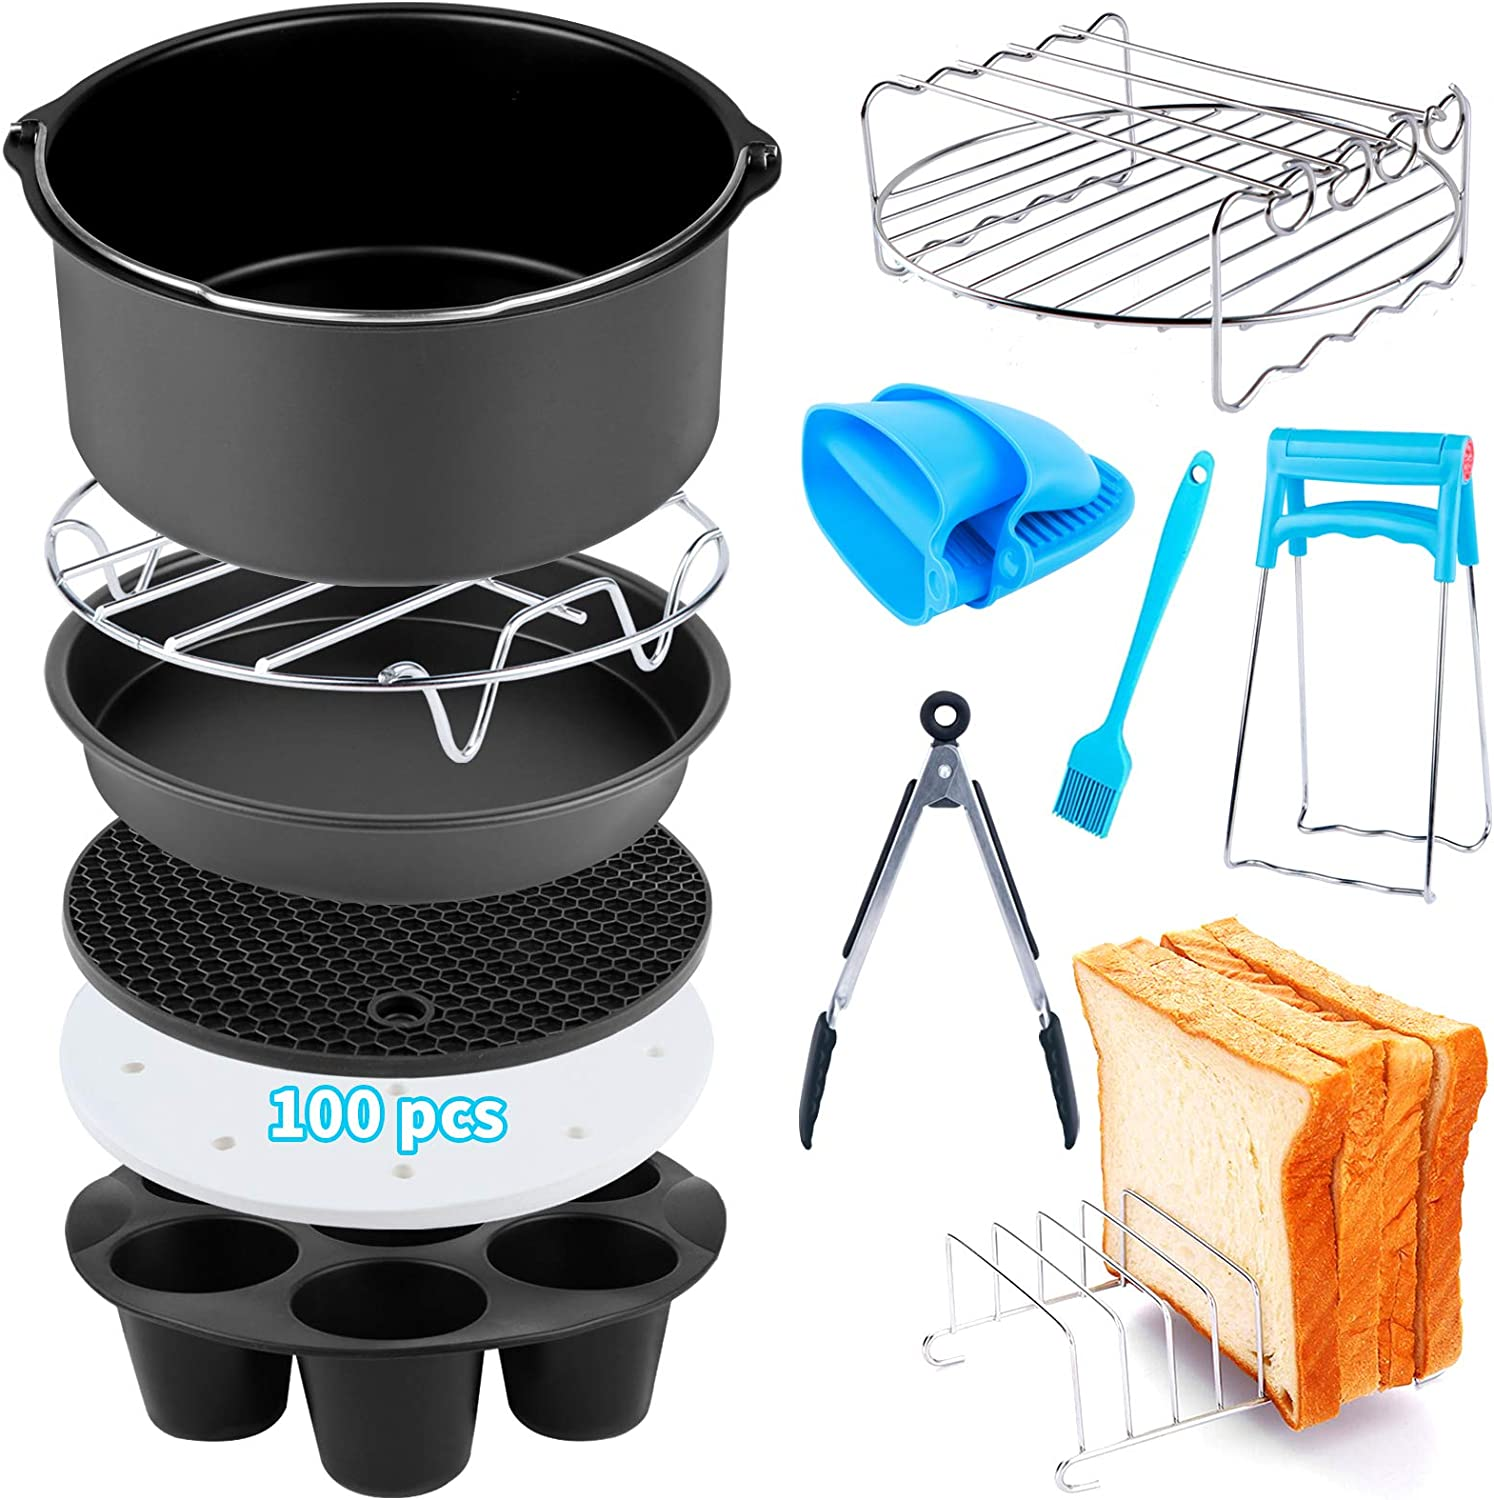 Air Fryer Accessories 12 PCS for Ninja Phillips Gowise Gourmia Dash Power XL Air Fryer, Fit 3.6-4.2-6.8QT Air Fryer with 8 Inch Cake Pan, Pizza Pan, Silicone Baking Cup, Skewer Rack, Parchment Paper